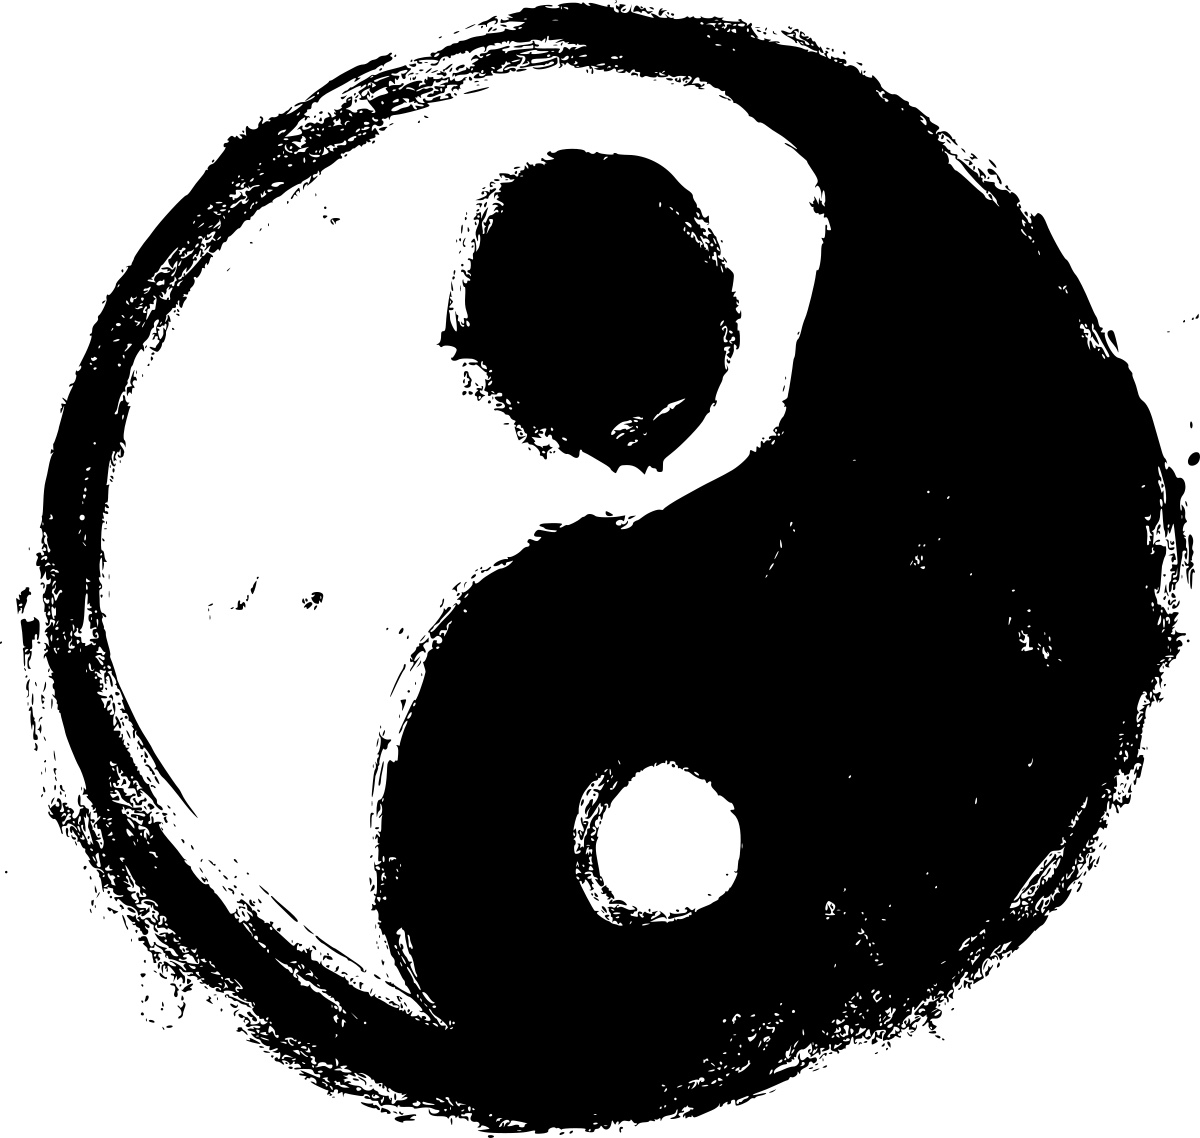 ​Yin and Yang